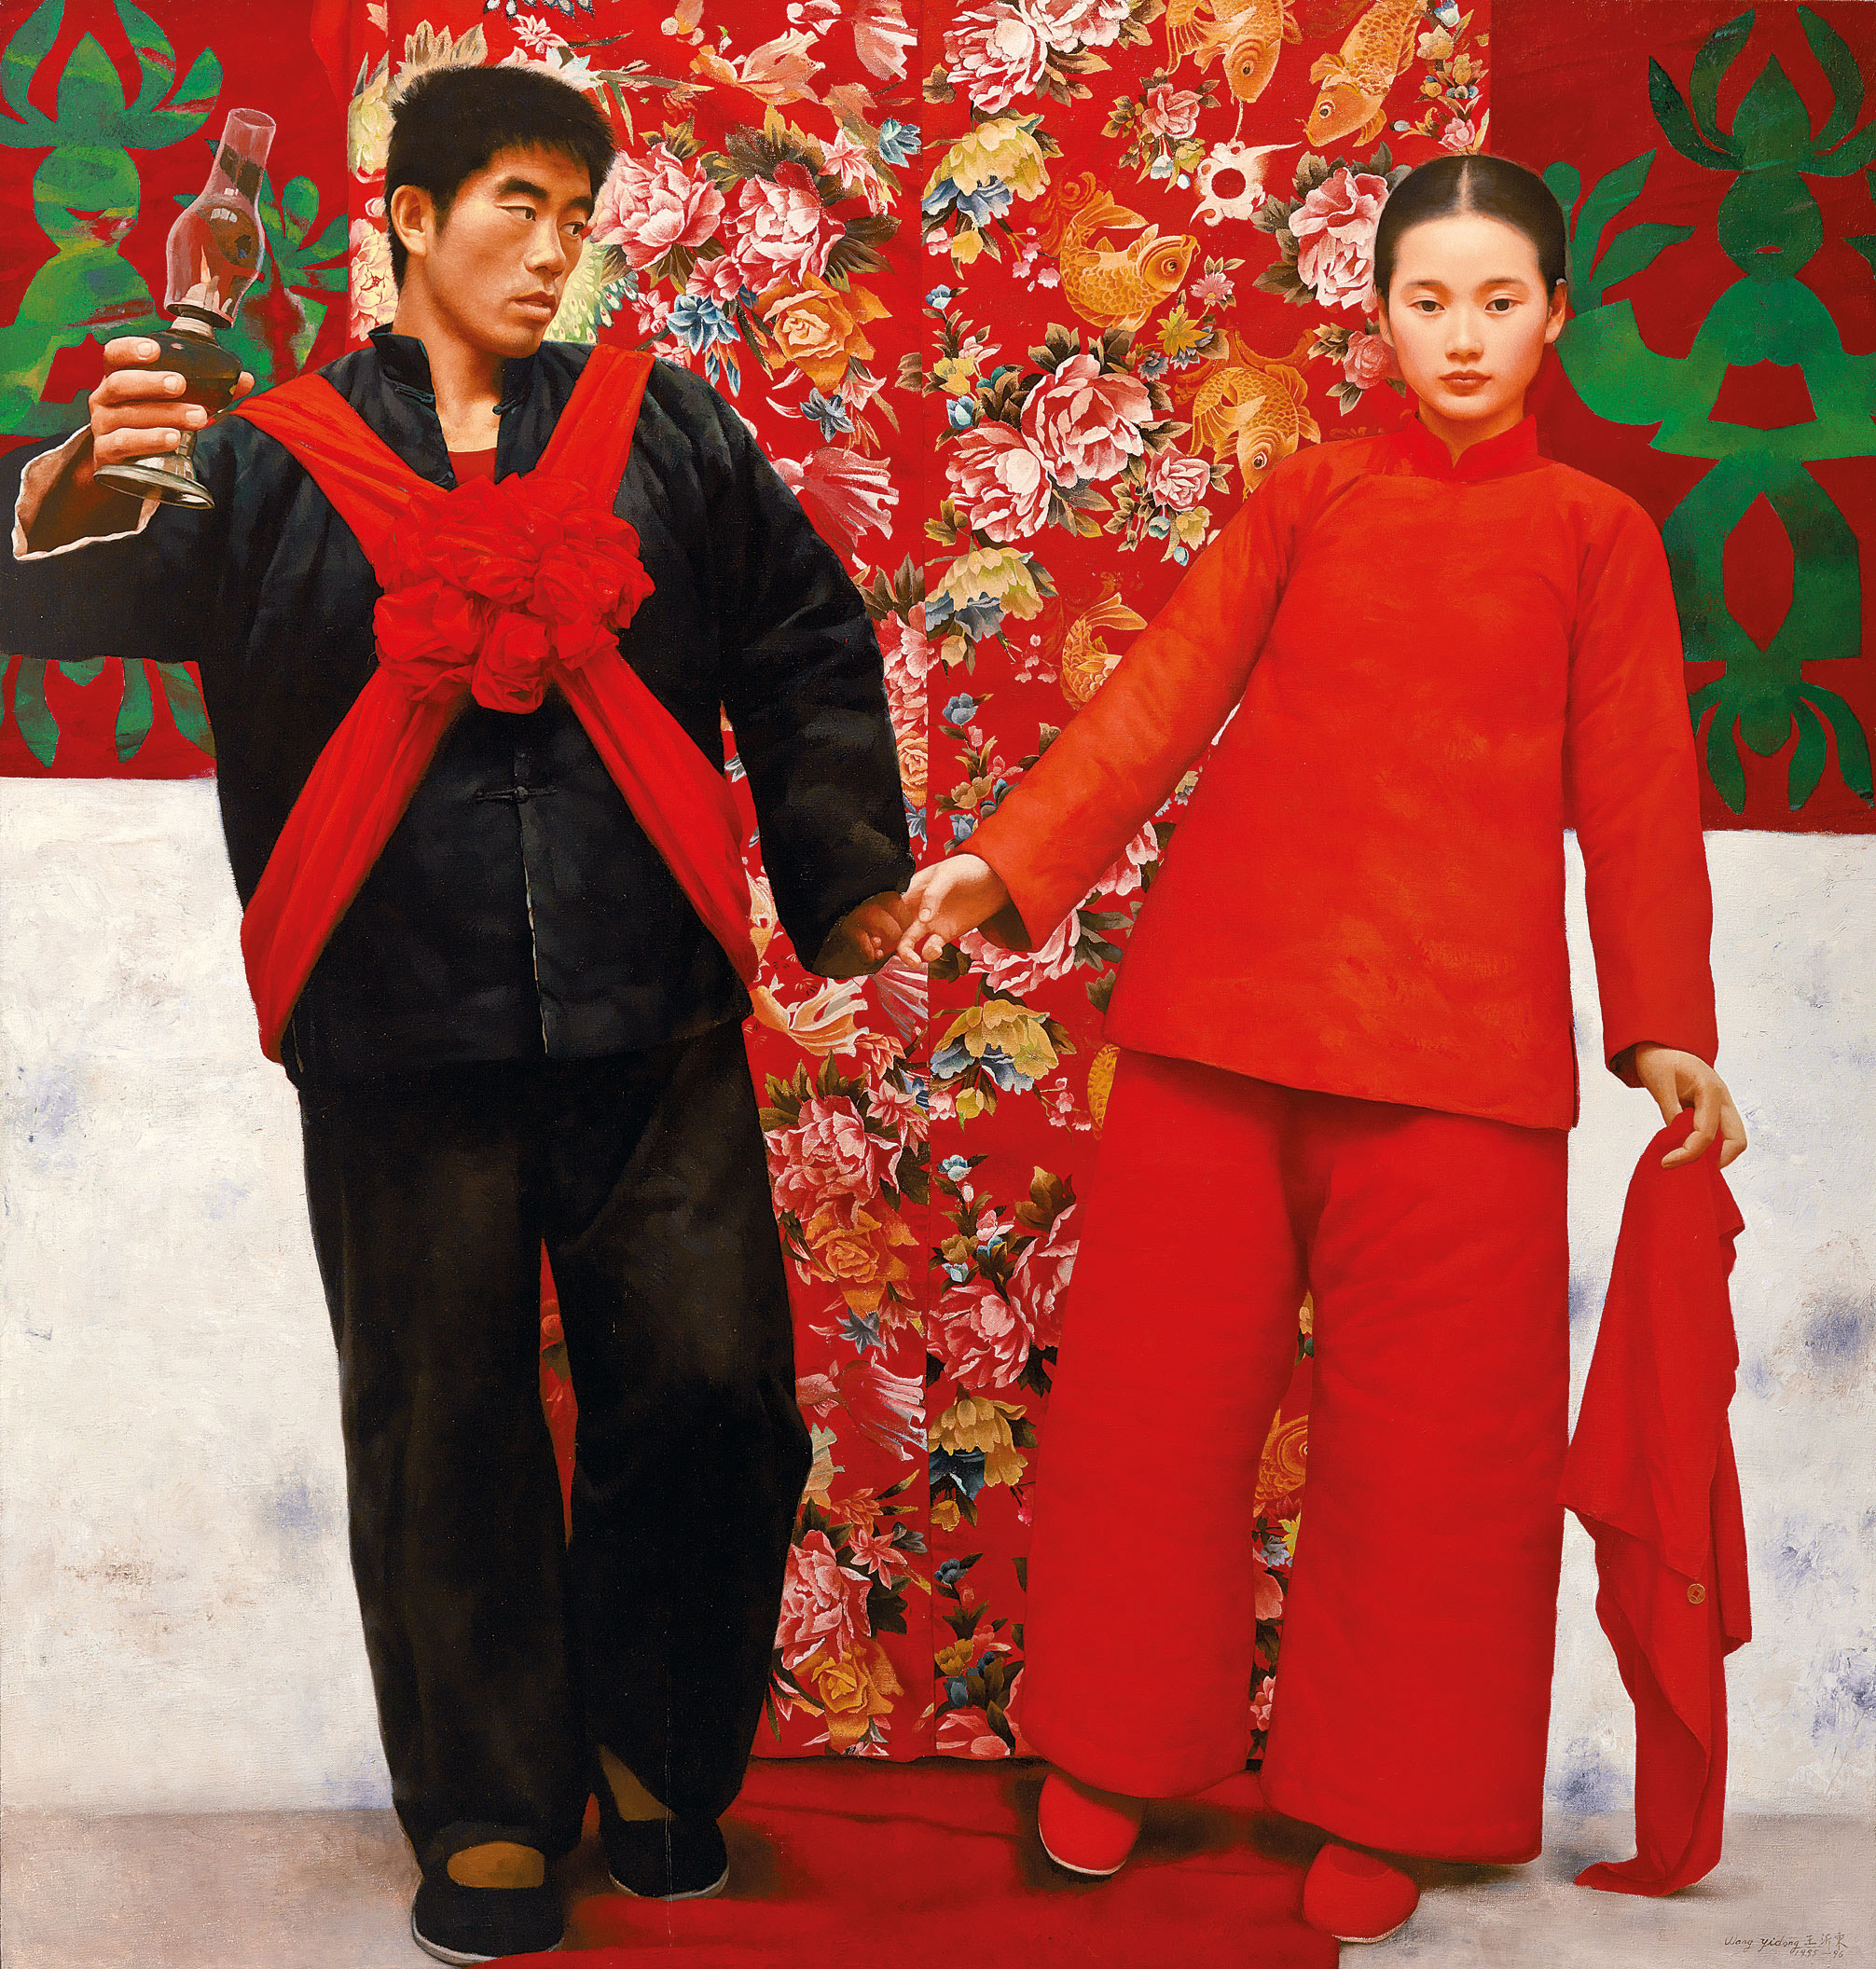 WANG YIDONG, 'A Married Woman in the Mountains' ,  oil on canvas, 190 x 180 cm. - Painted in 1995-1996